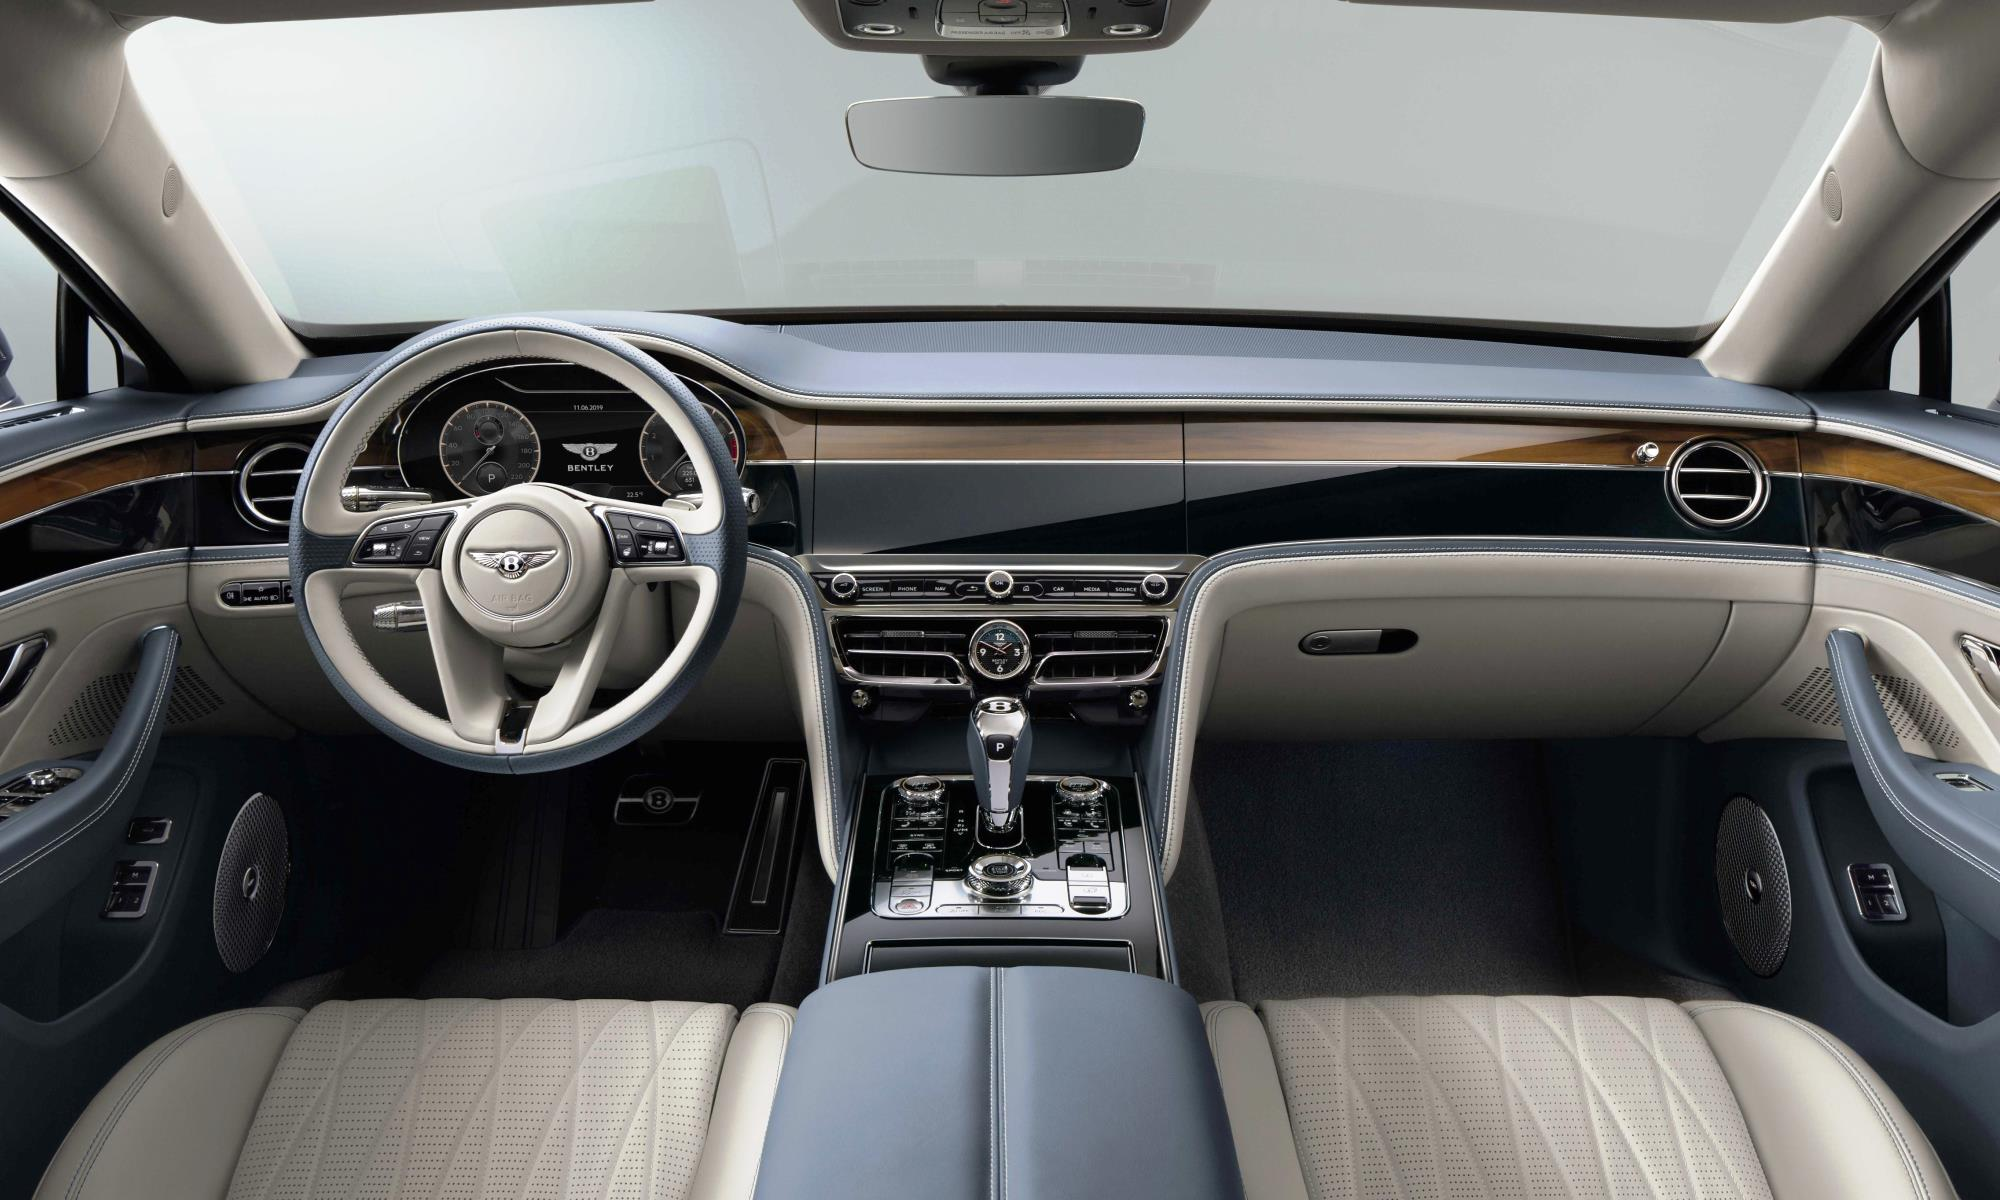 New Bentley Flying Spur interior